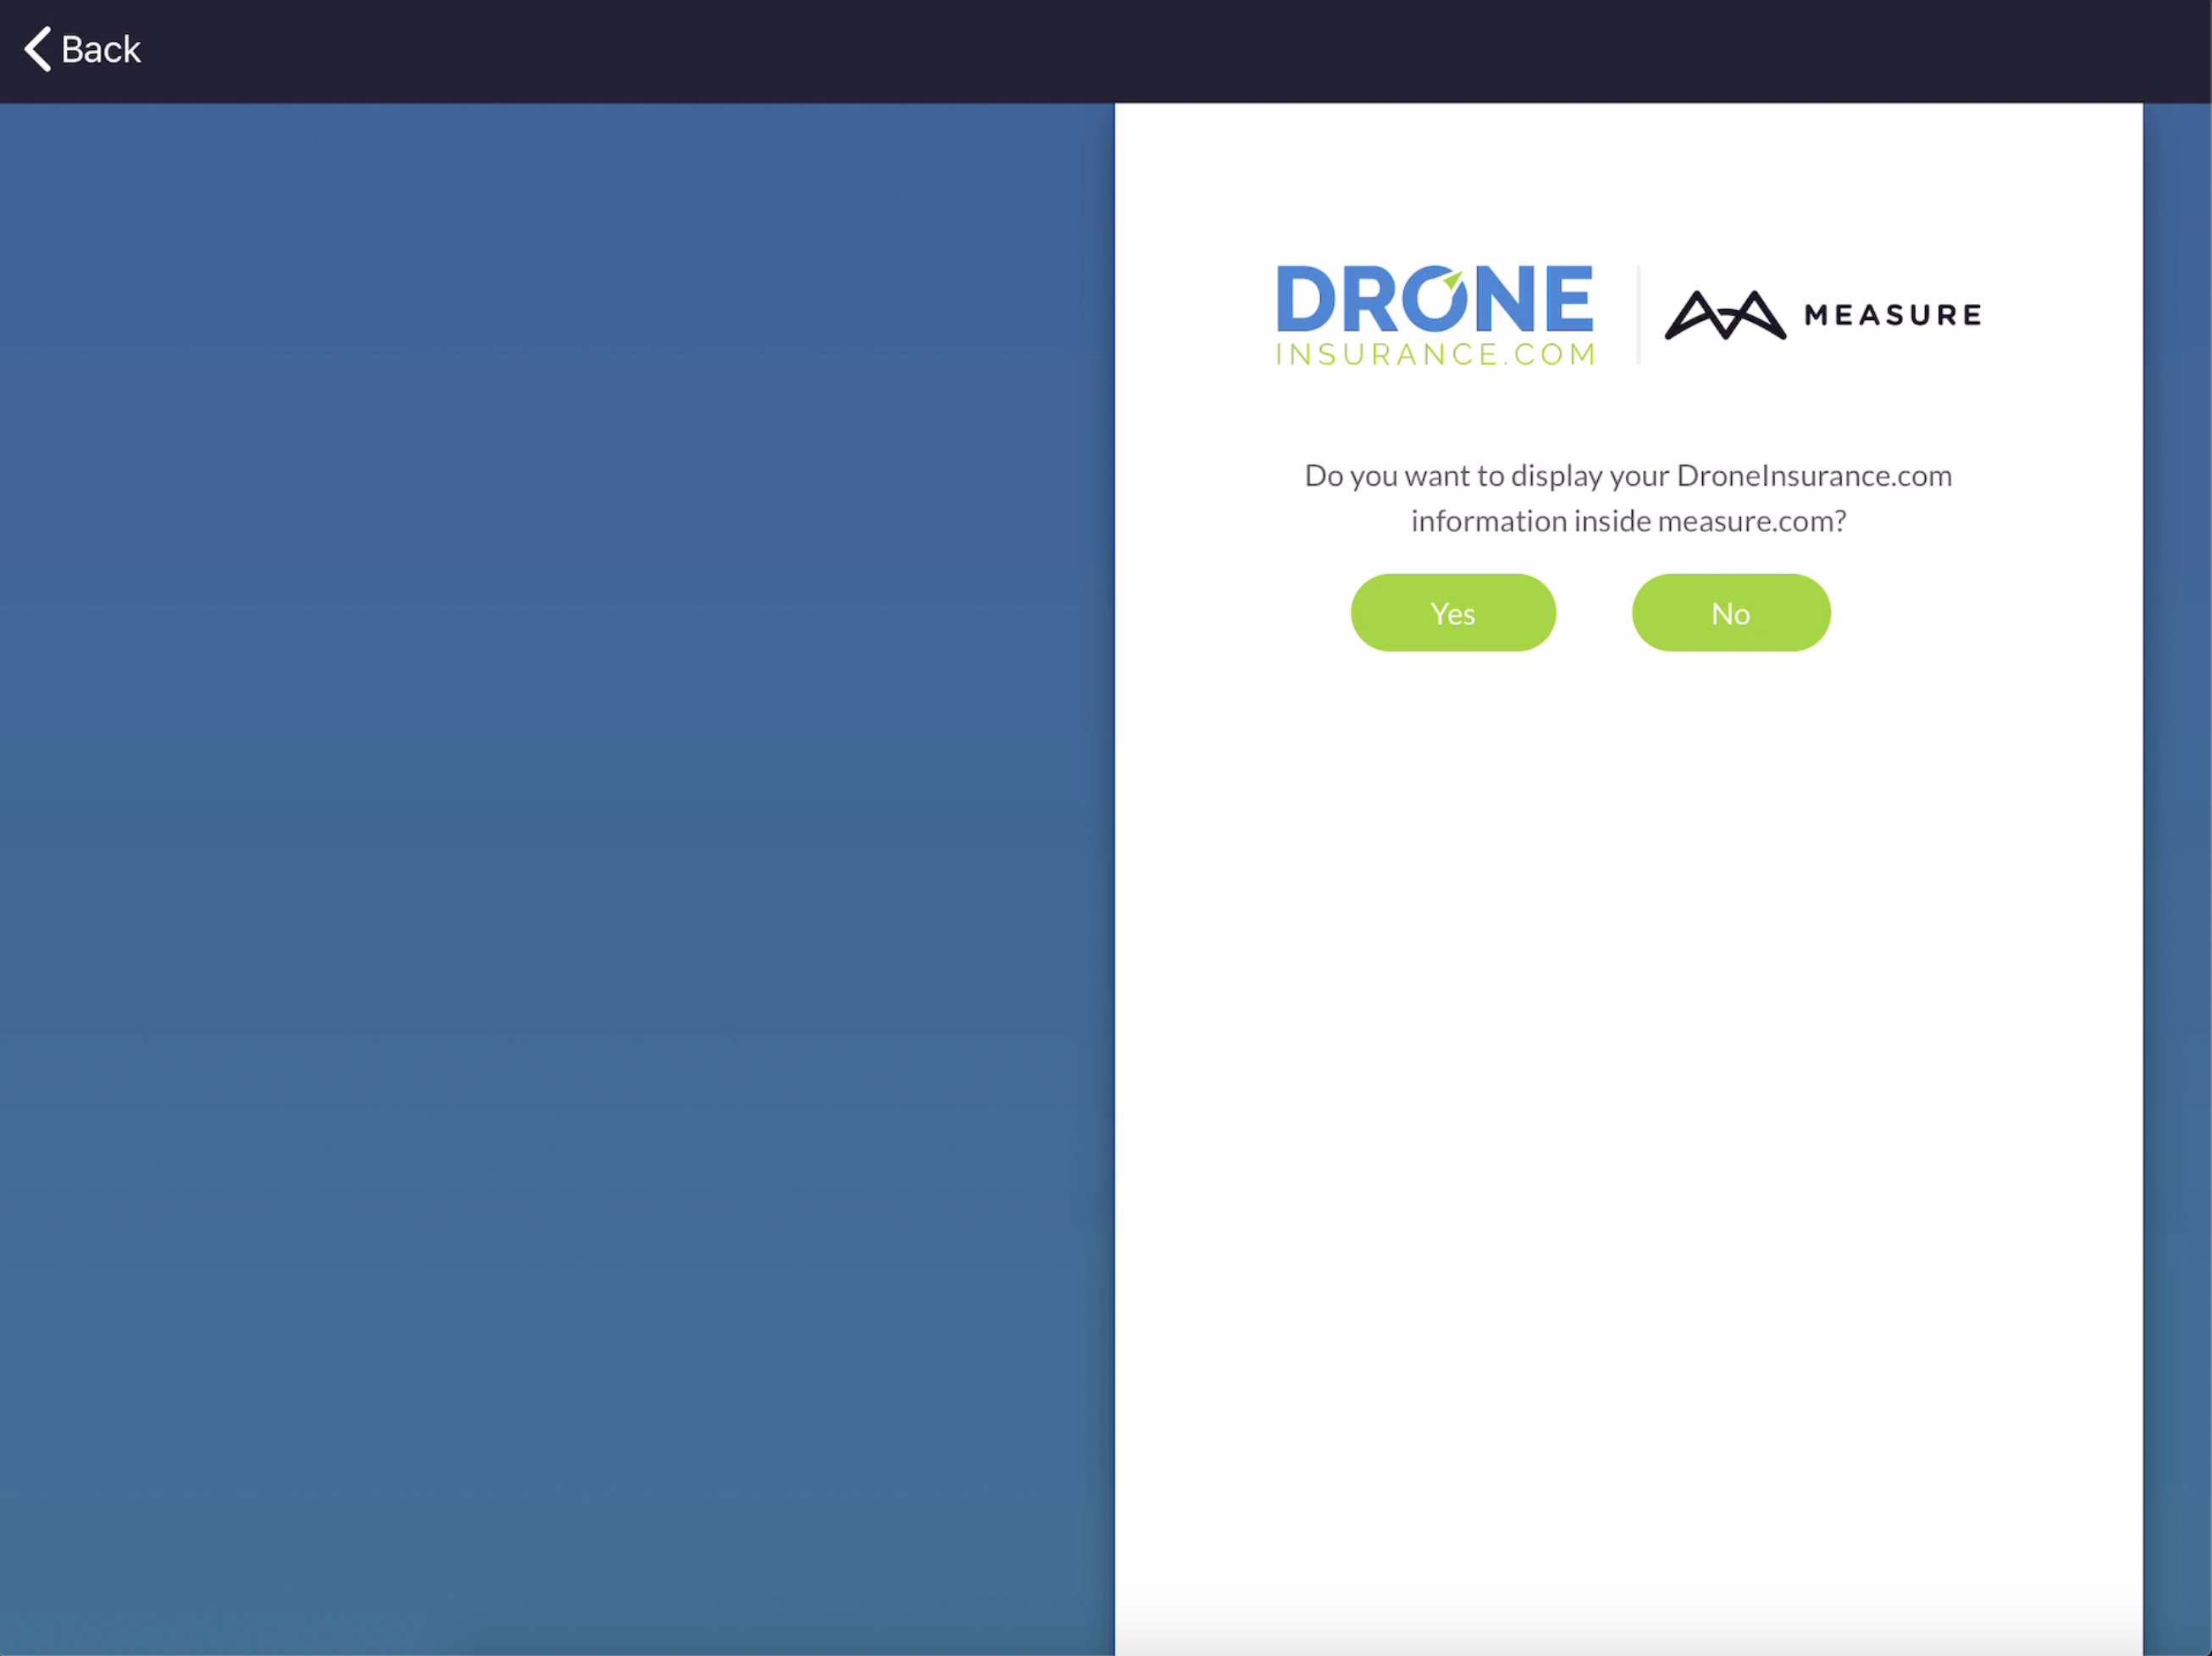 Measure Integration - DroneInsurance.com OAuth Confirmation - implemented